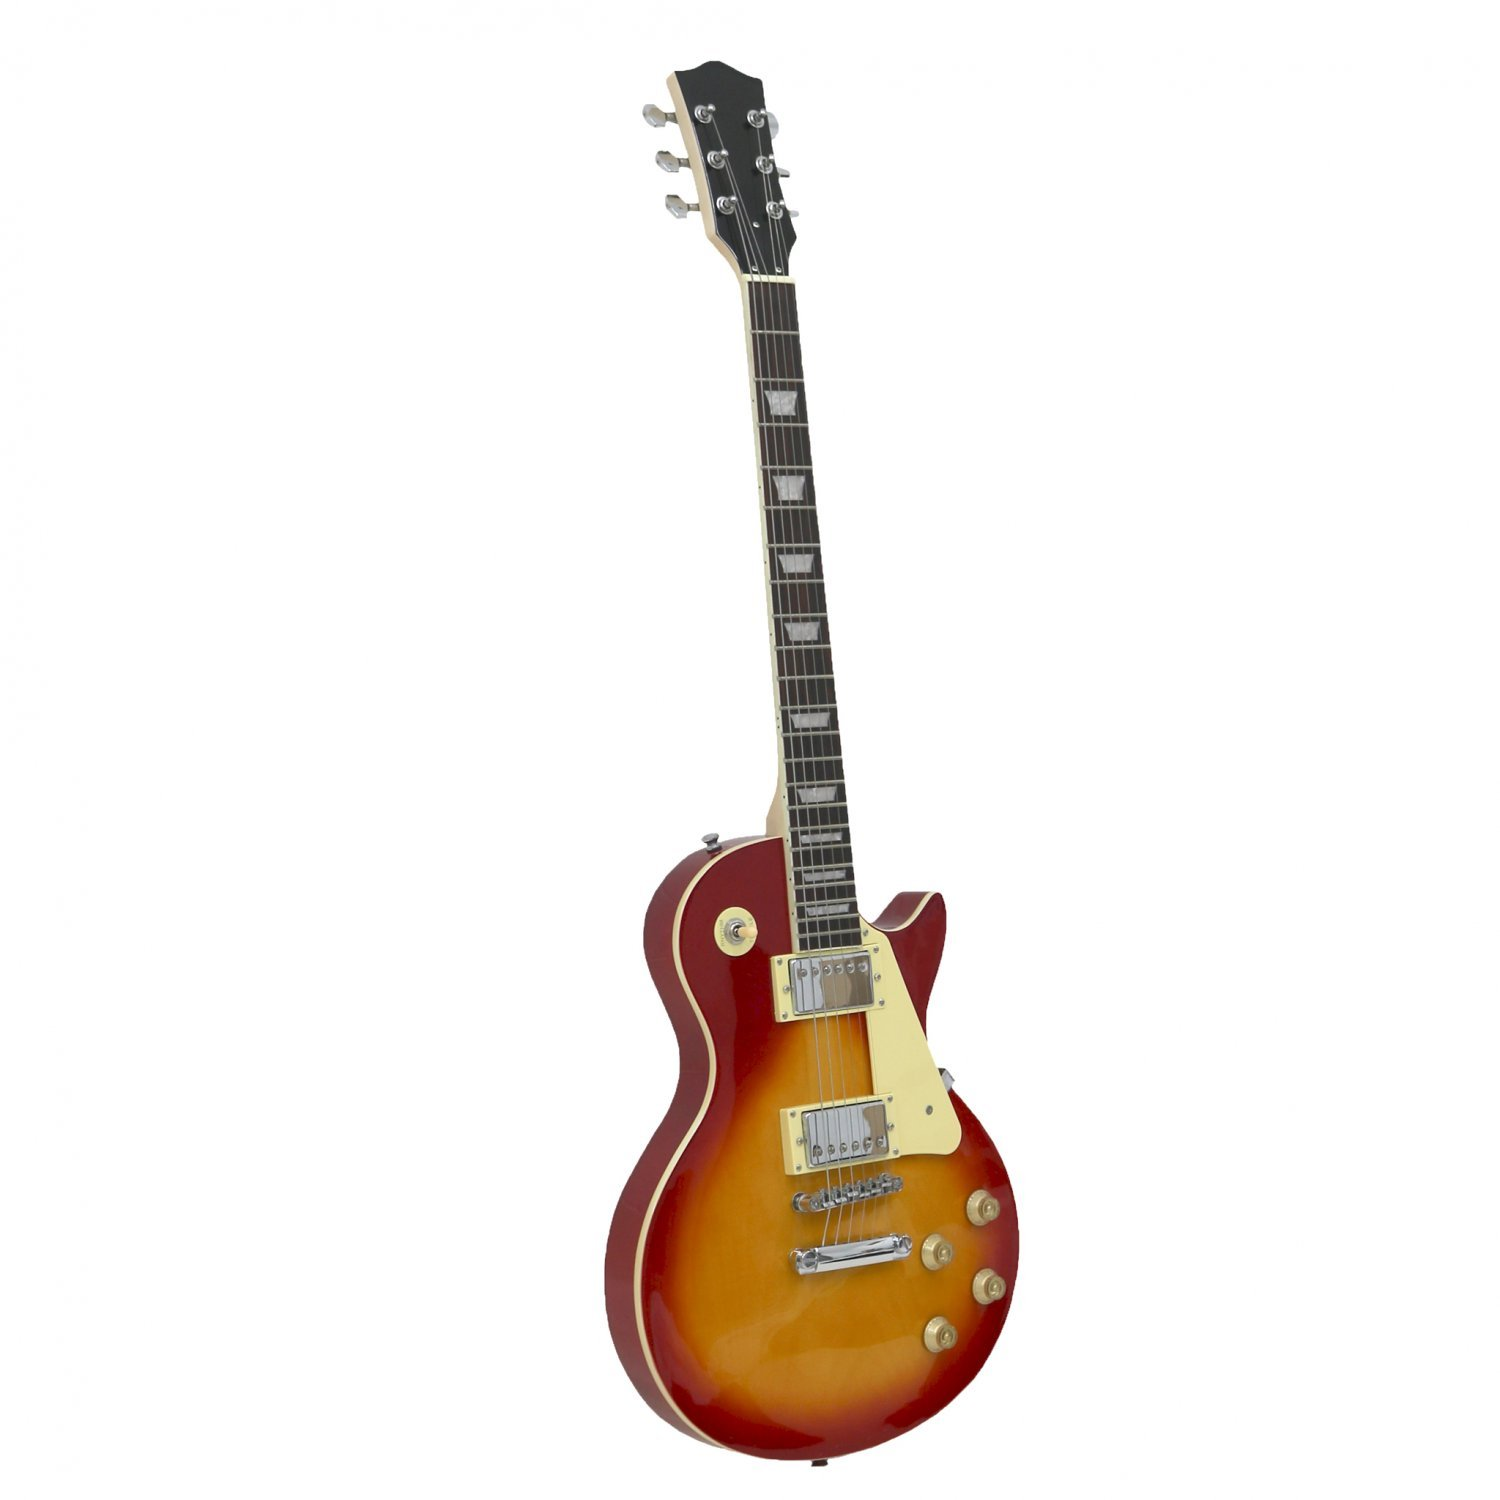 sunburst 6 string full sized electric guitar oypla stocking the very best in toys. Black Bedroom Furniture Sets. Home Design Ideas